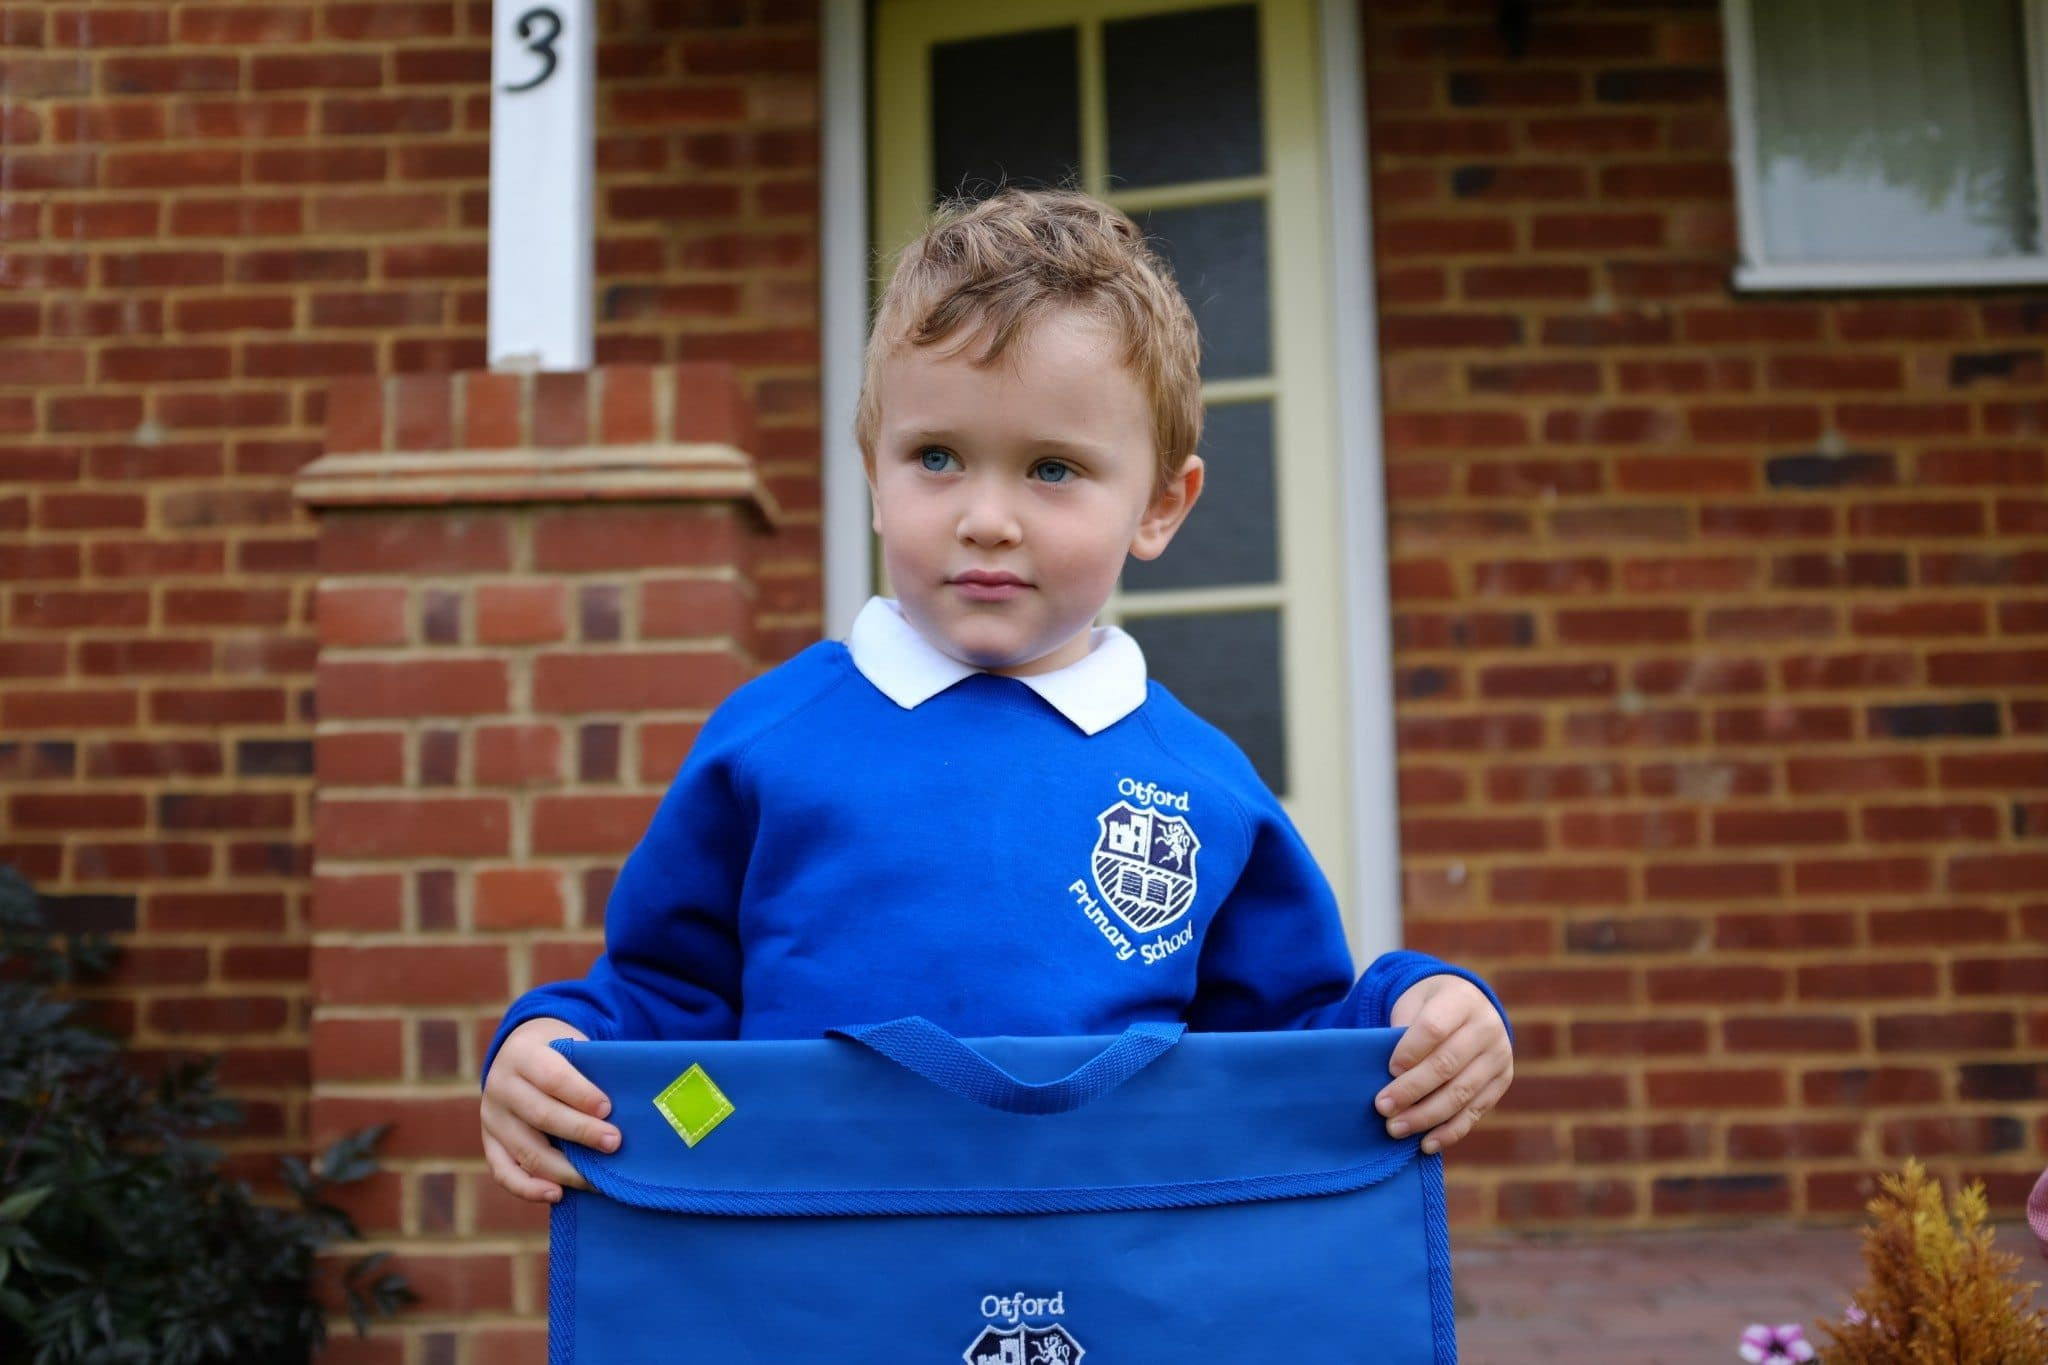 Family ang Children photographer in Sevenoaks Maria Assia's son Little boy in school uniform holding his school book bag on his first day of school